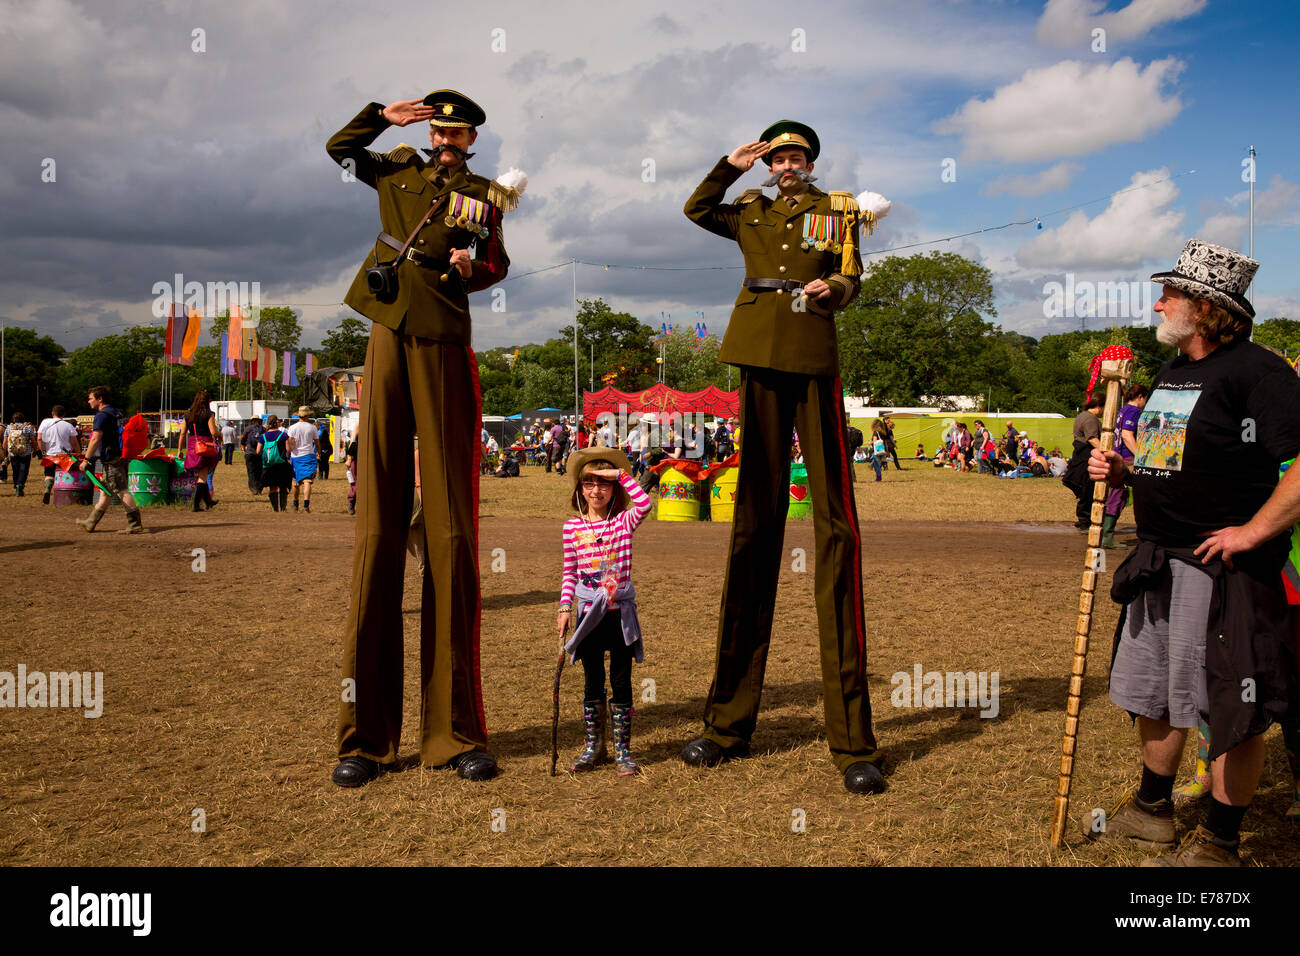 Photo op with soldiers on stilts, Glastonbury Festival 2014 - Stock Image